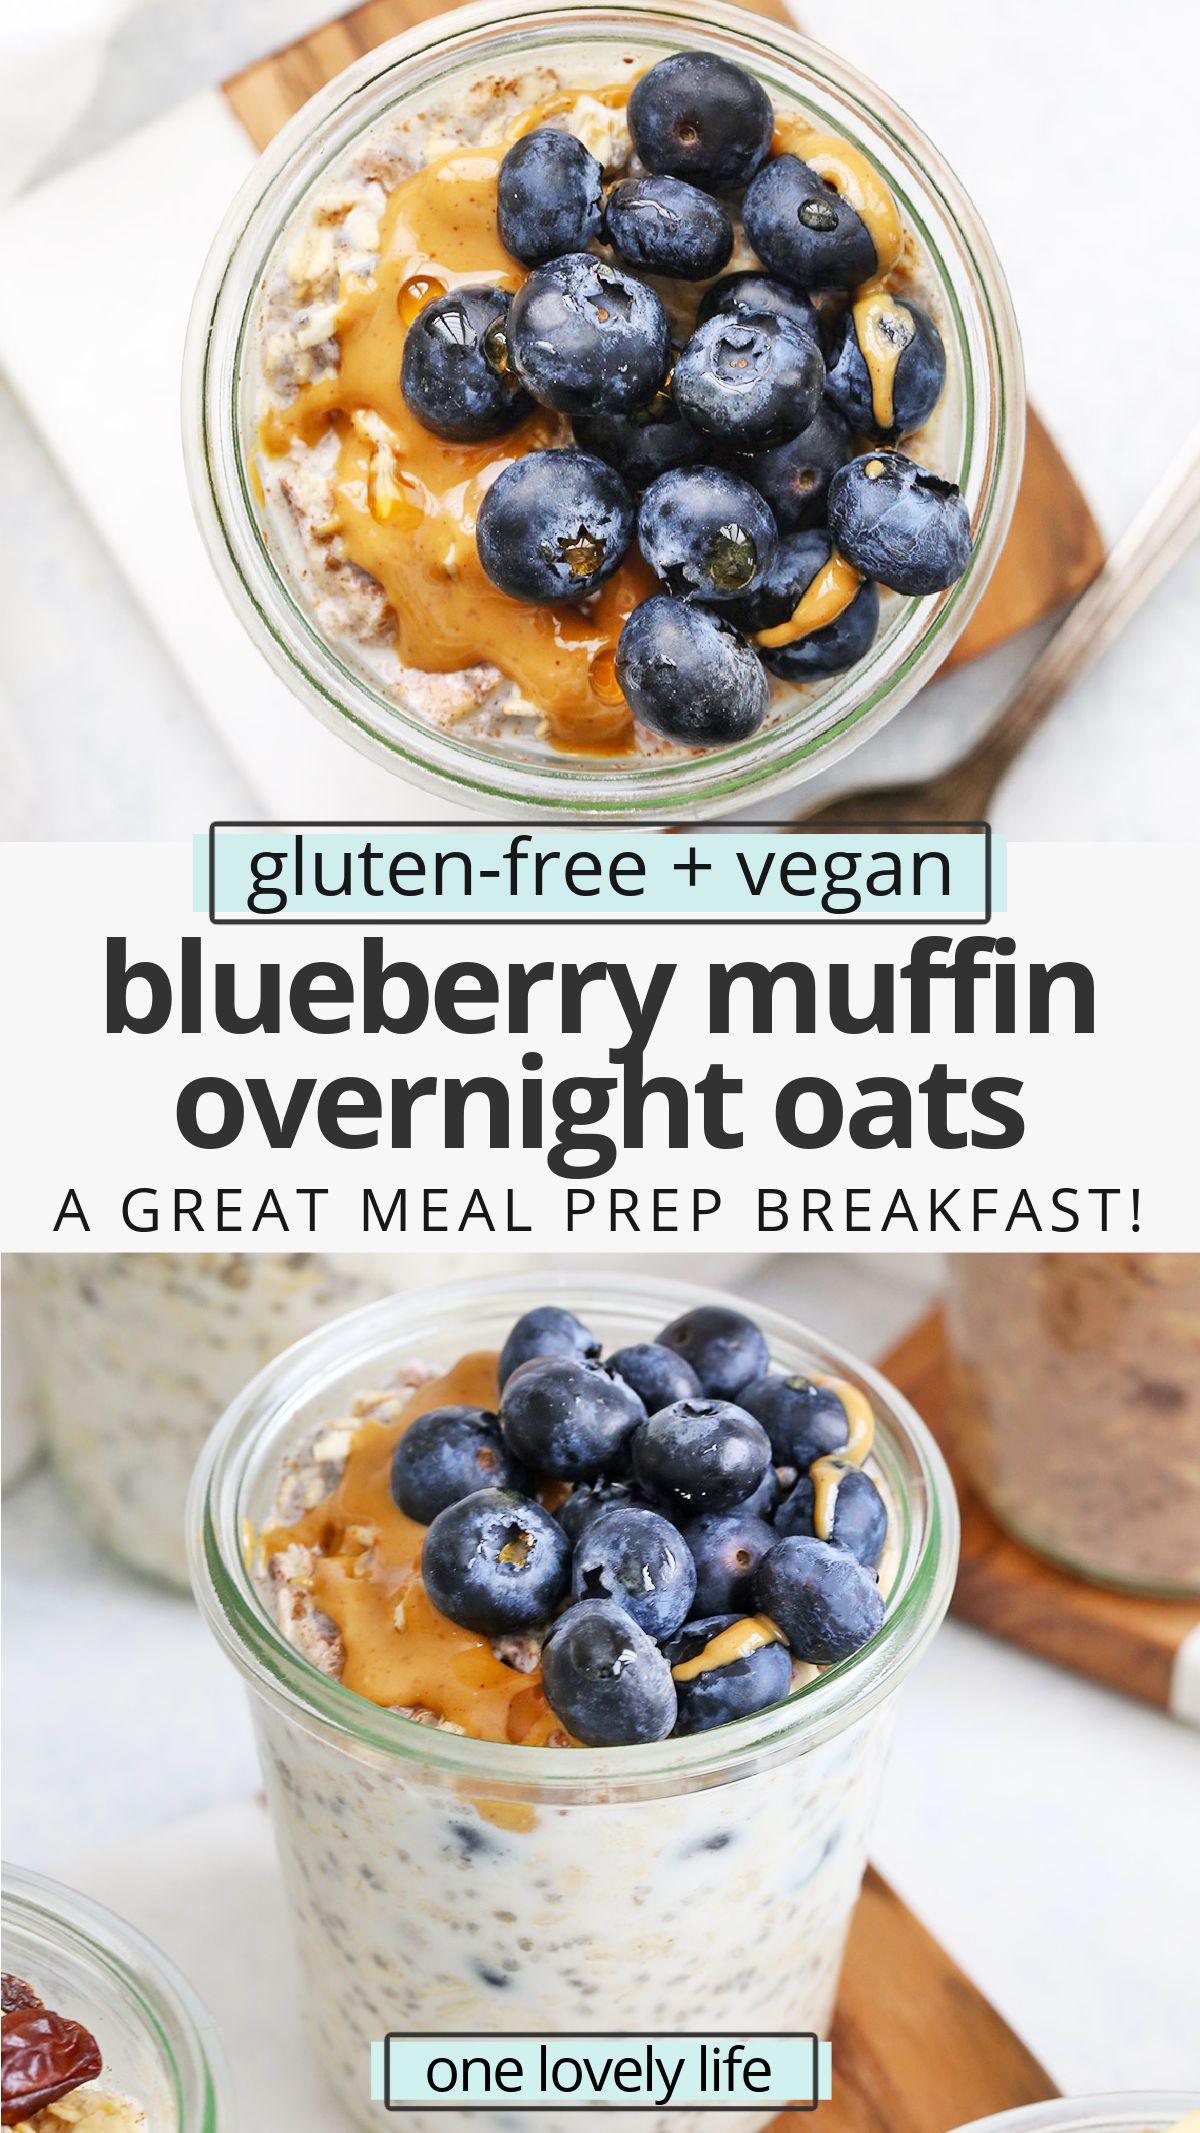 Blueberry Muffin Overnight Oats - Creamy, delicious overnight oats with a blueberry muffin twist! You'll love this yummy meal prep breakfast! (Gluten-free, vegan) // Meal Prep Breakfast // Blueberry Overnight Oats // Healthy Breakfast #glutenfree #overnightoats #oatmeal #vegan #healthybreakfast